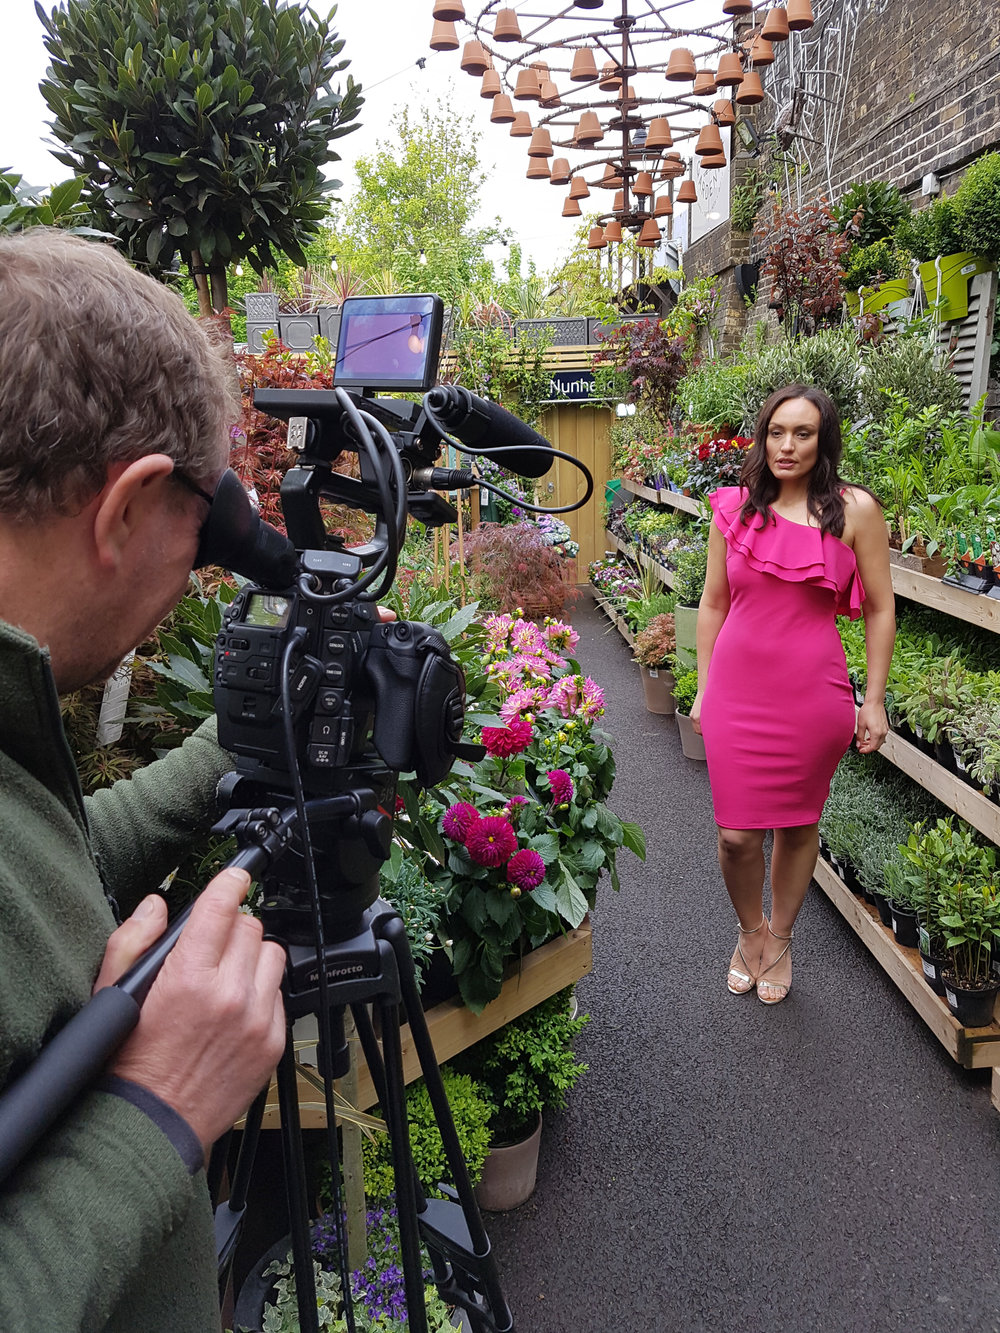 "Tune into ITV at 9:10am on Tuesday 2nd May where you'll see us ""popping in Pink""!  #lorraine  #itv # itvthismorning   #poppinginpink  #dahlias  #gardencentre  #thenunheadgardener  #markheyes   @thenunheadgardener"